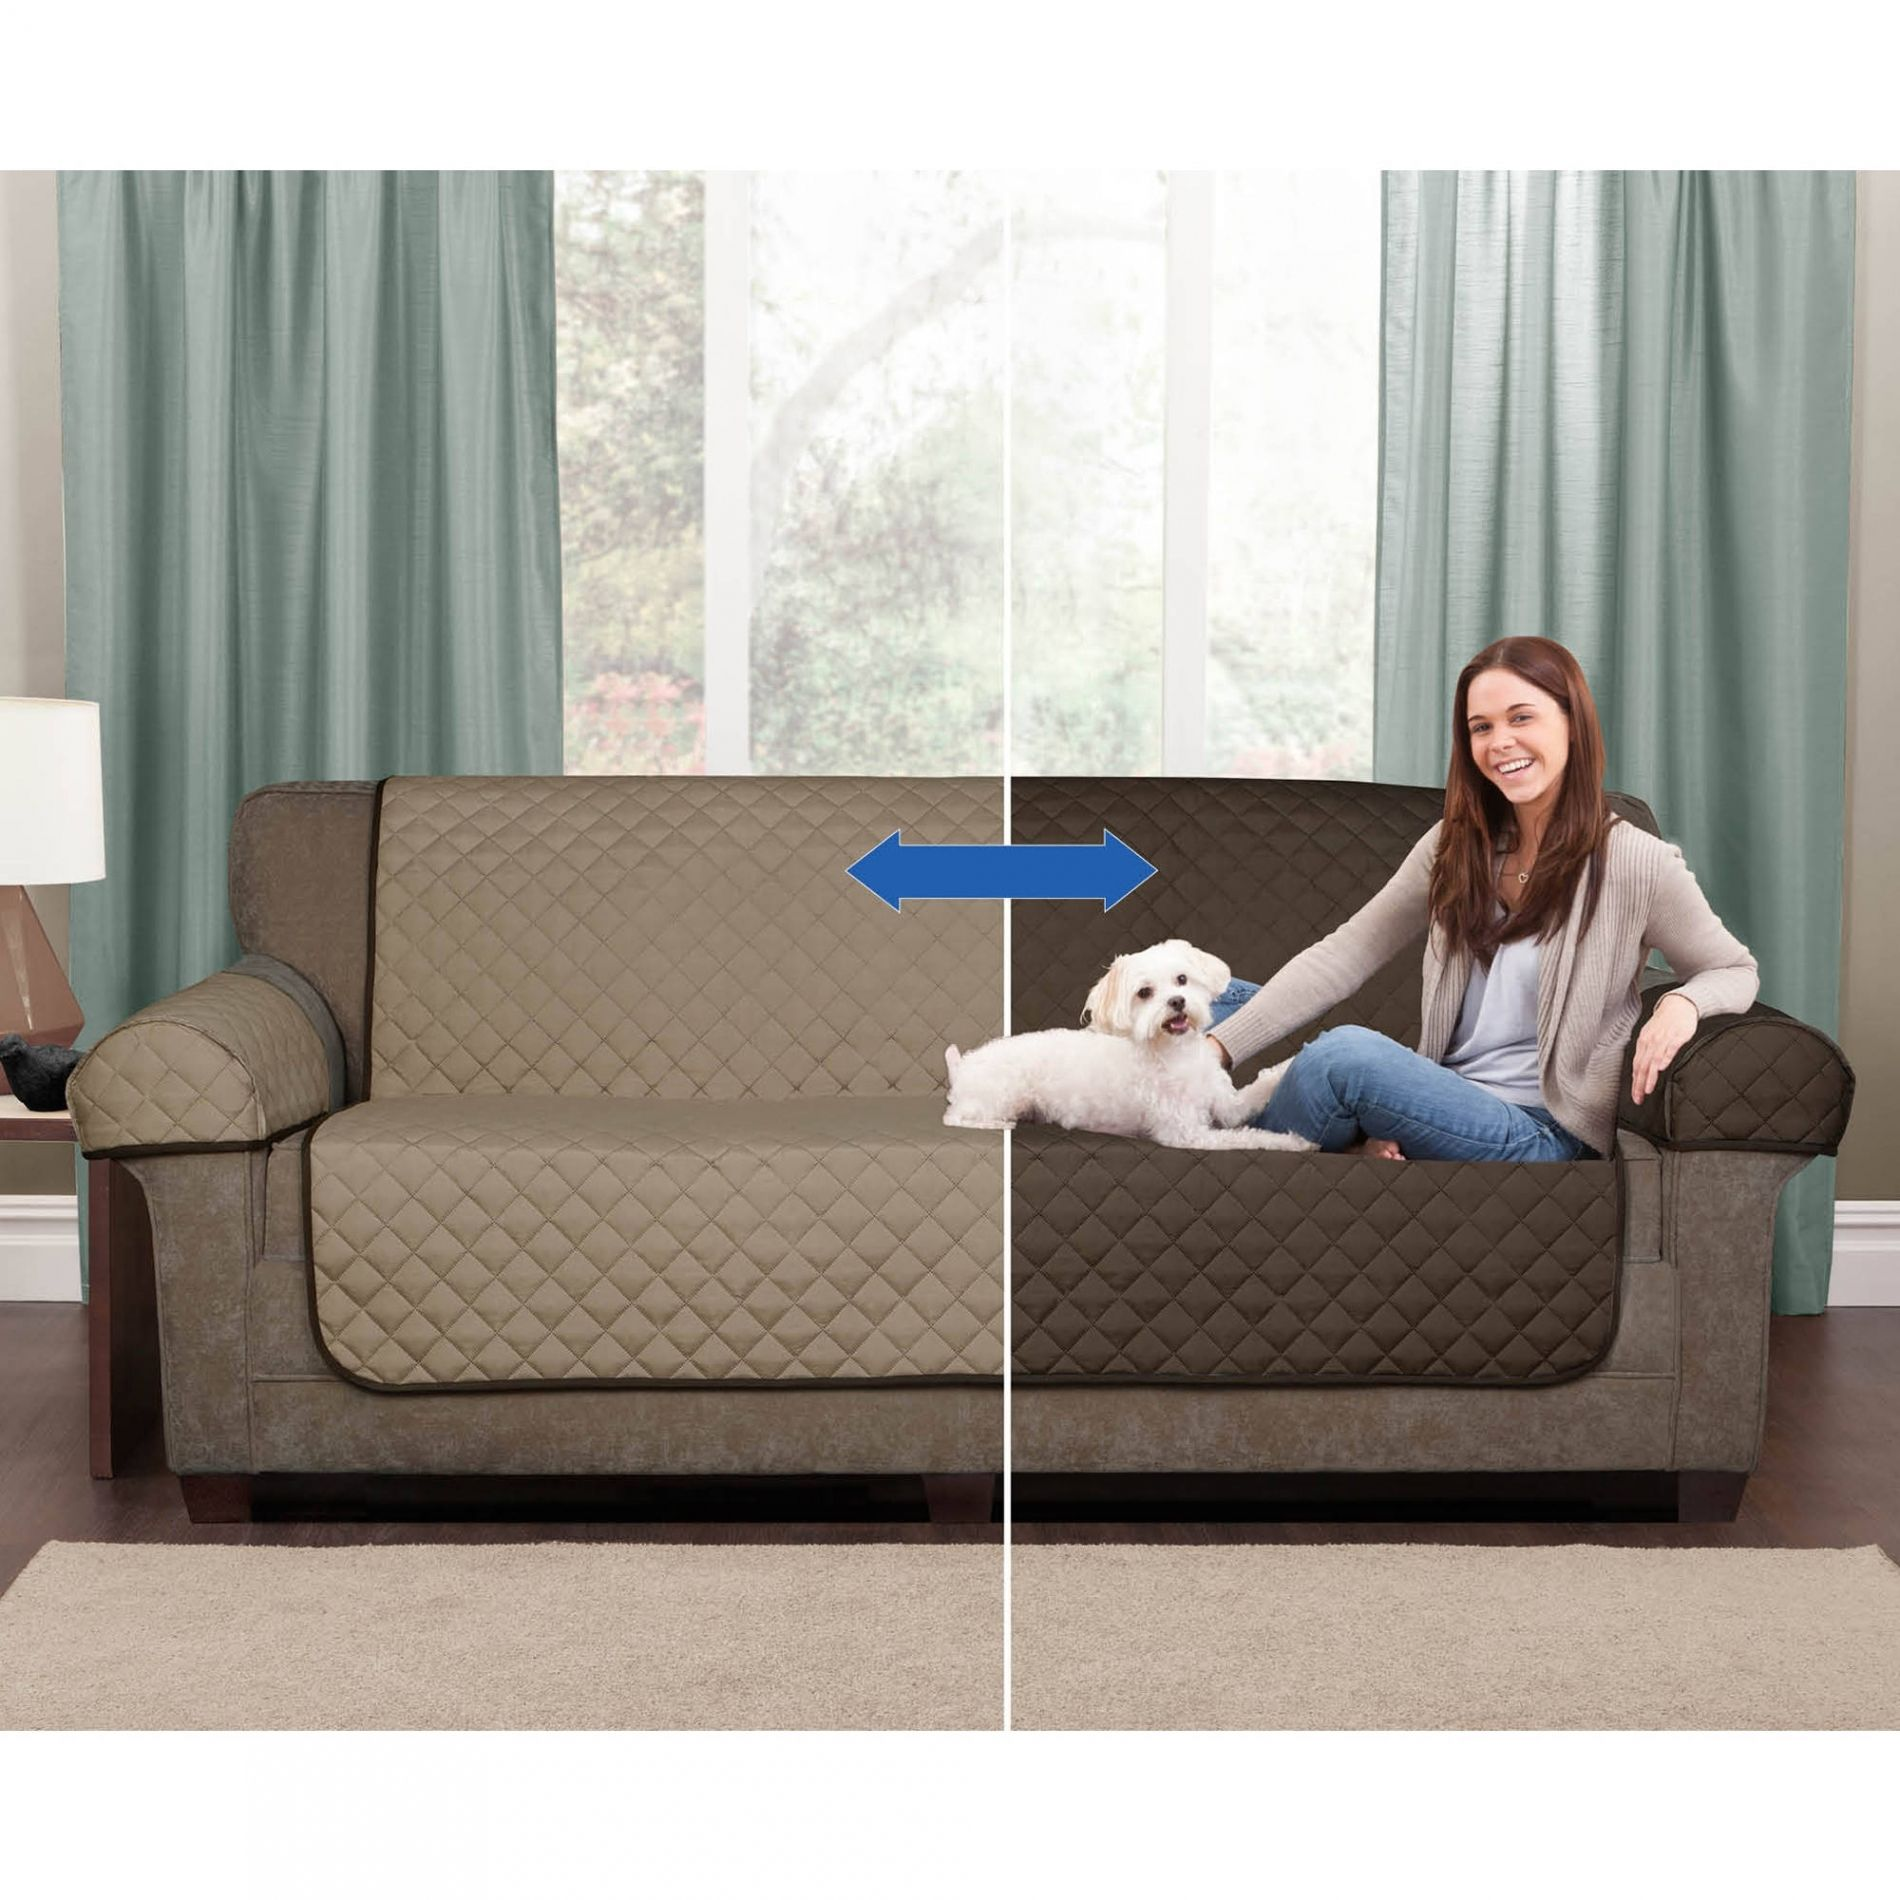 unique sofa pet cover picture-New sofa Pet Cover Collection